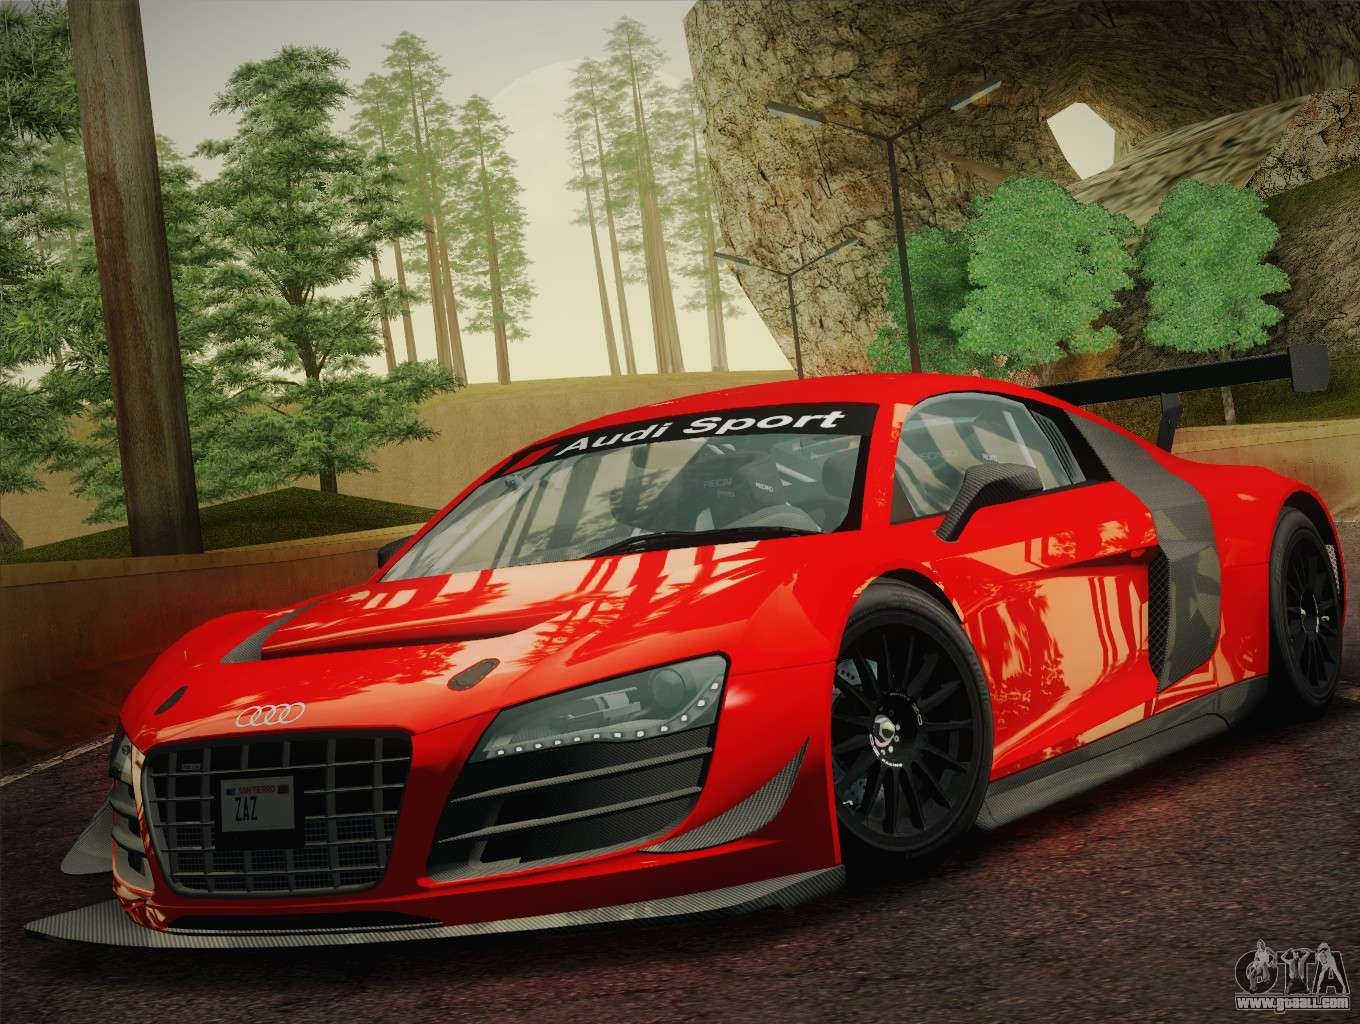 Audi r8 lms ultra w racing team vinyls for gta san andreas left view